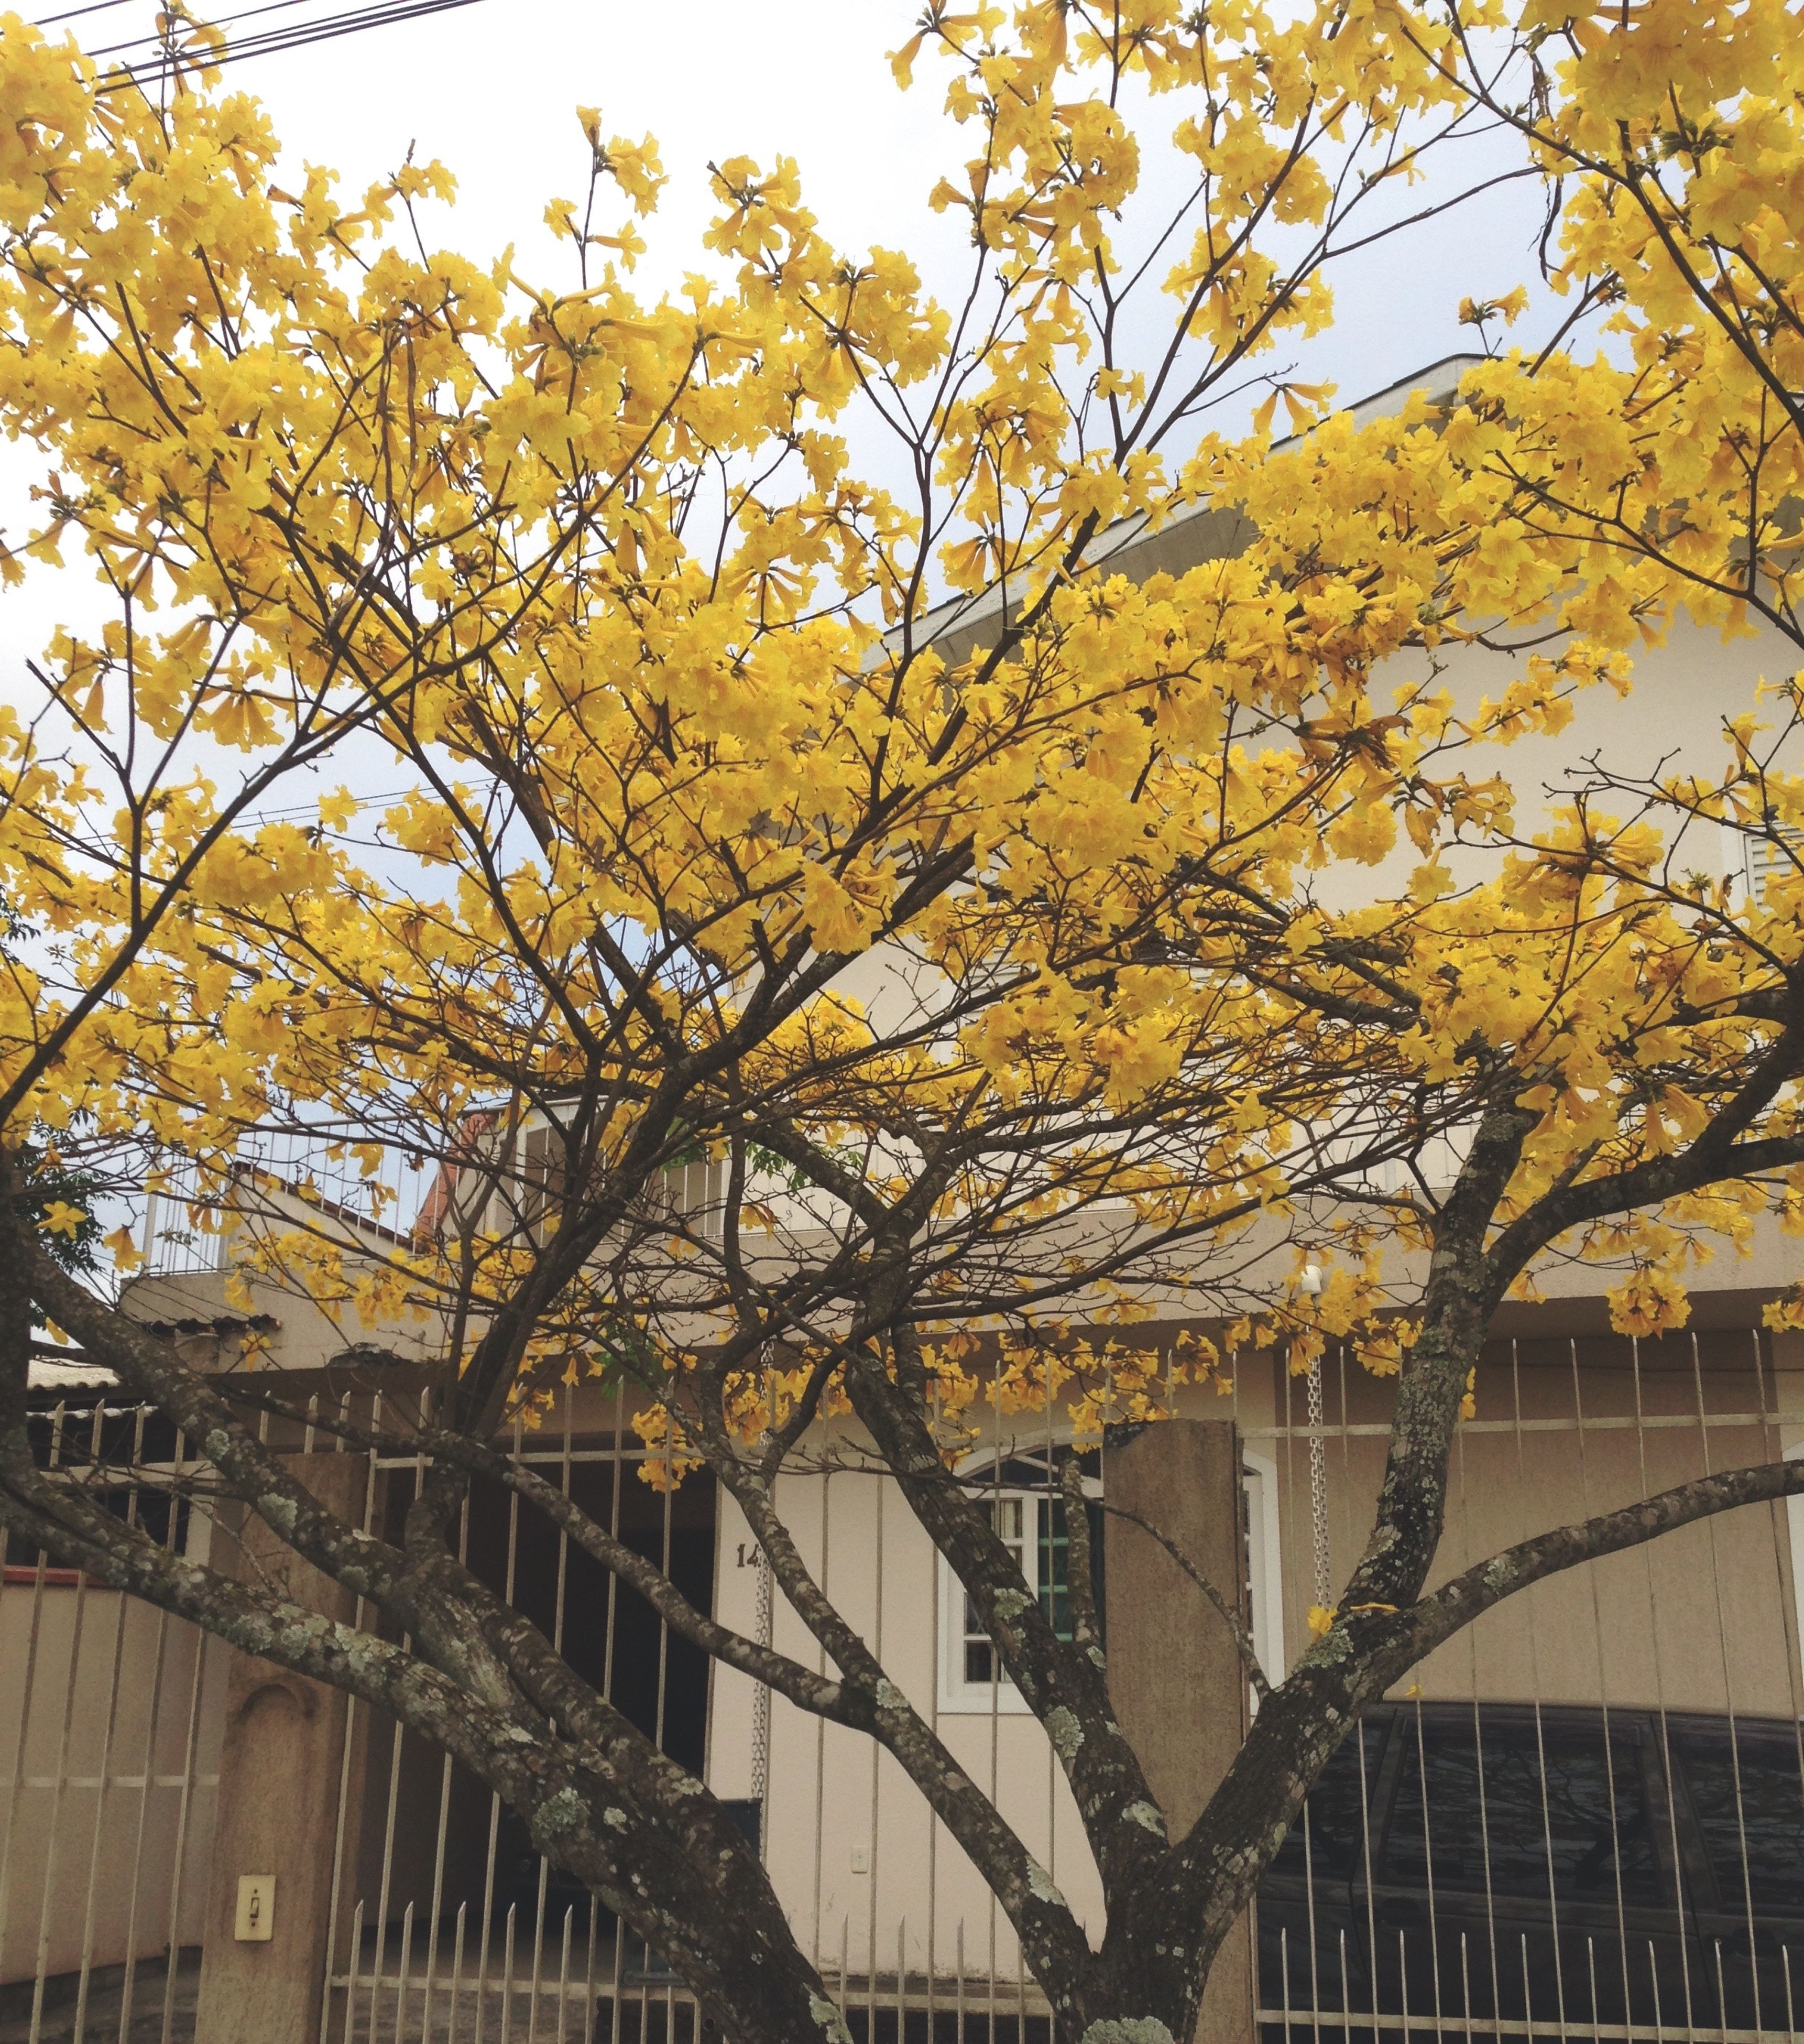 tree, yellow, built structure, architecture, branch, railing, growth, building exterior, autumn, low angle view, change, fence, nature, day, outdoors, season, sky, no people, beauty in nature, sunlight